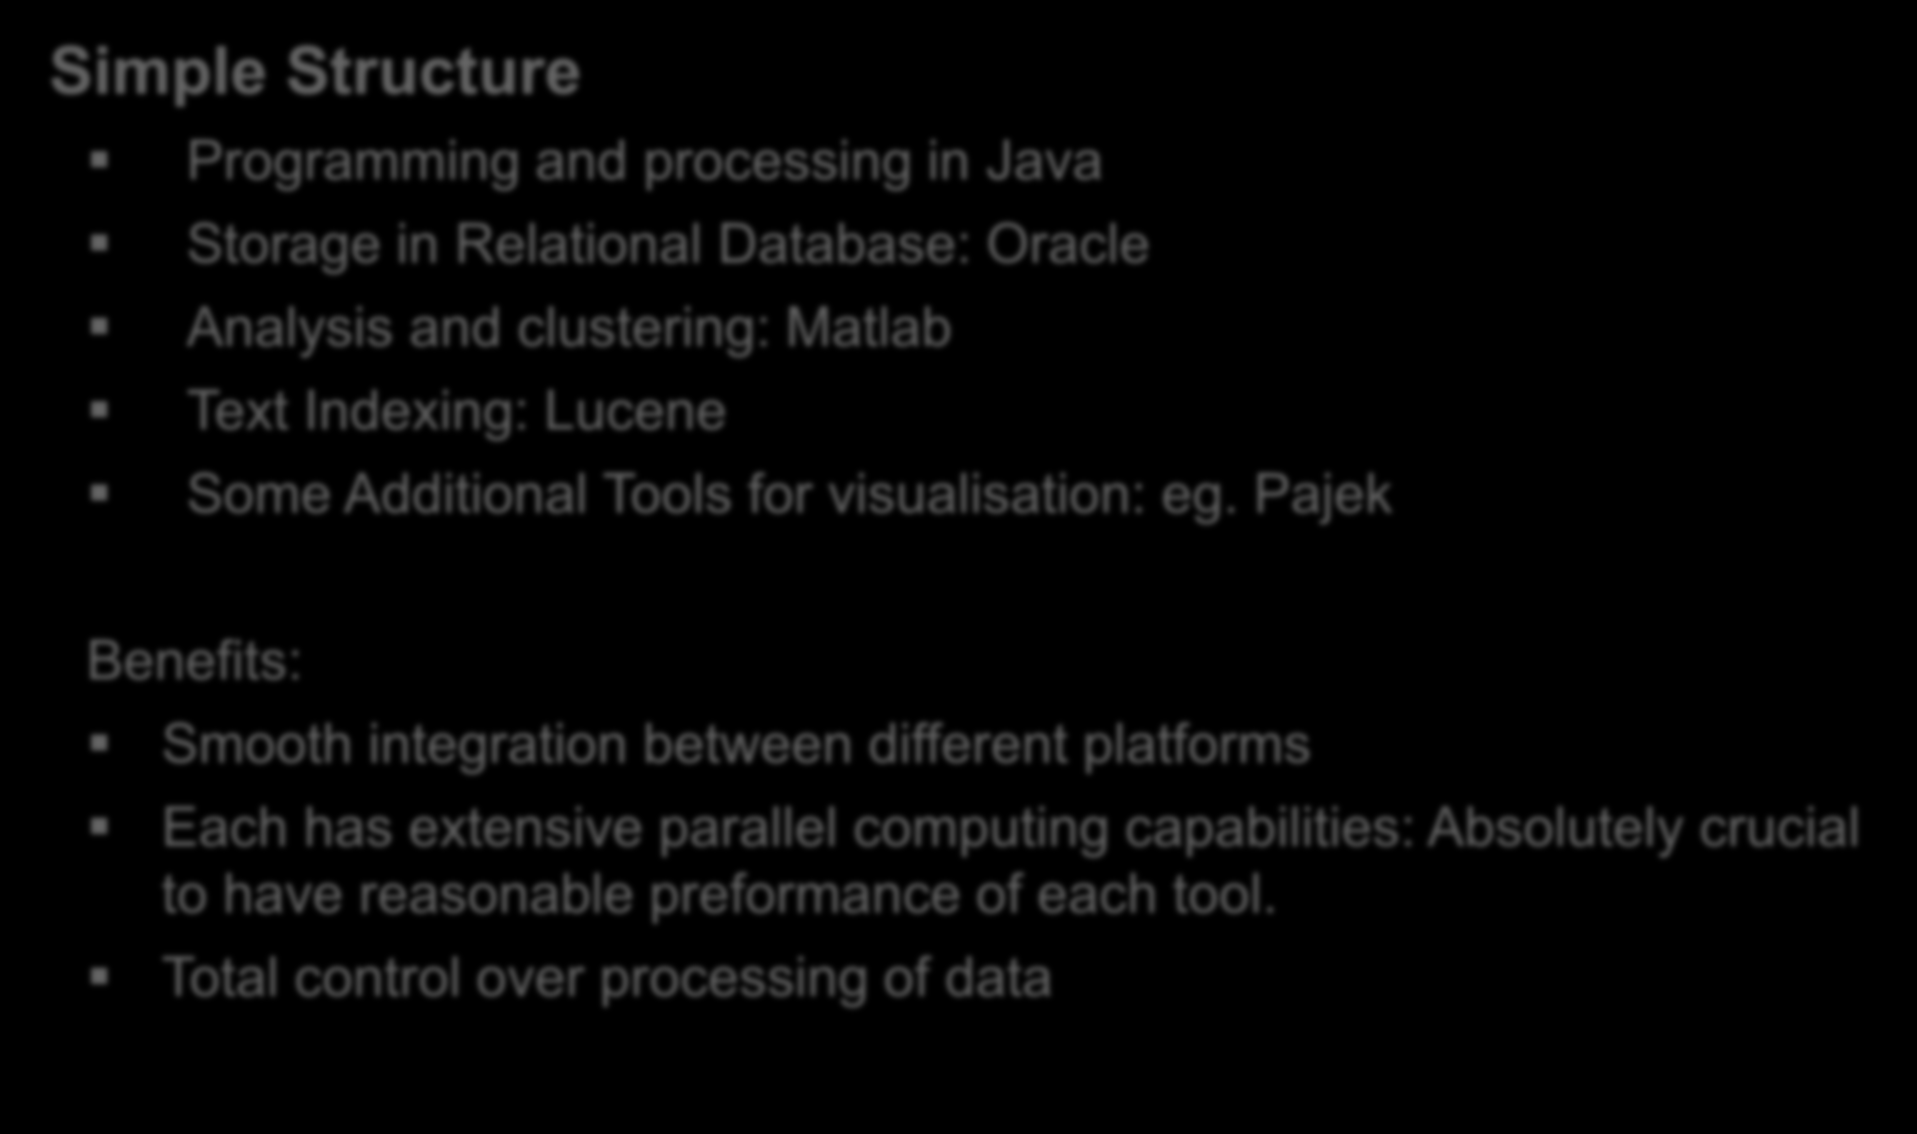 Software and Analytical Tools Simple Structure Programming and processing in Java Storage in Relational Database: Oracle Analysis and clustering: Matlab Text Indexing: Lucene Some Additional Tools